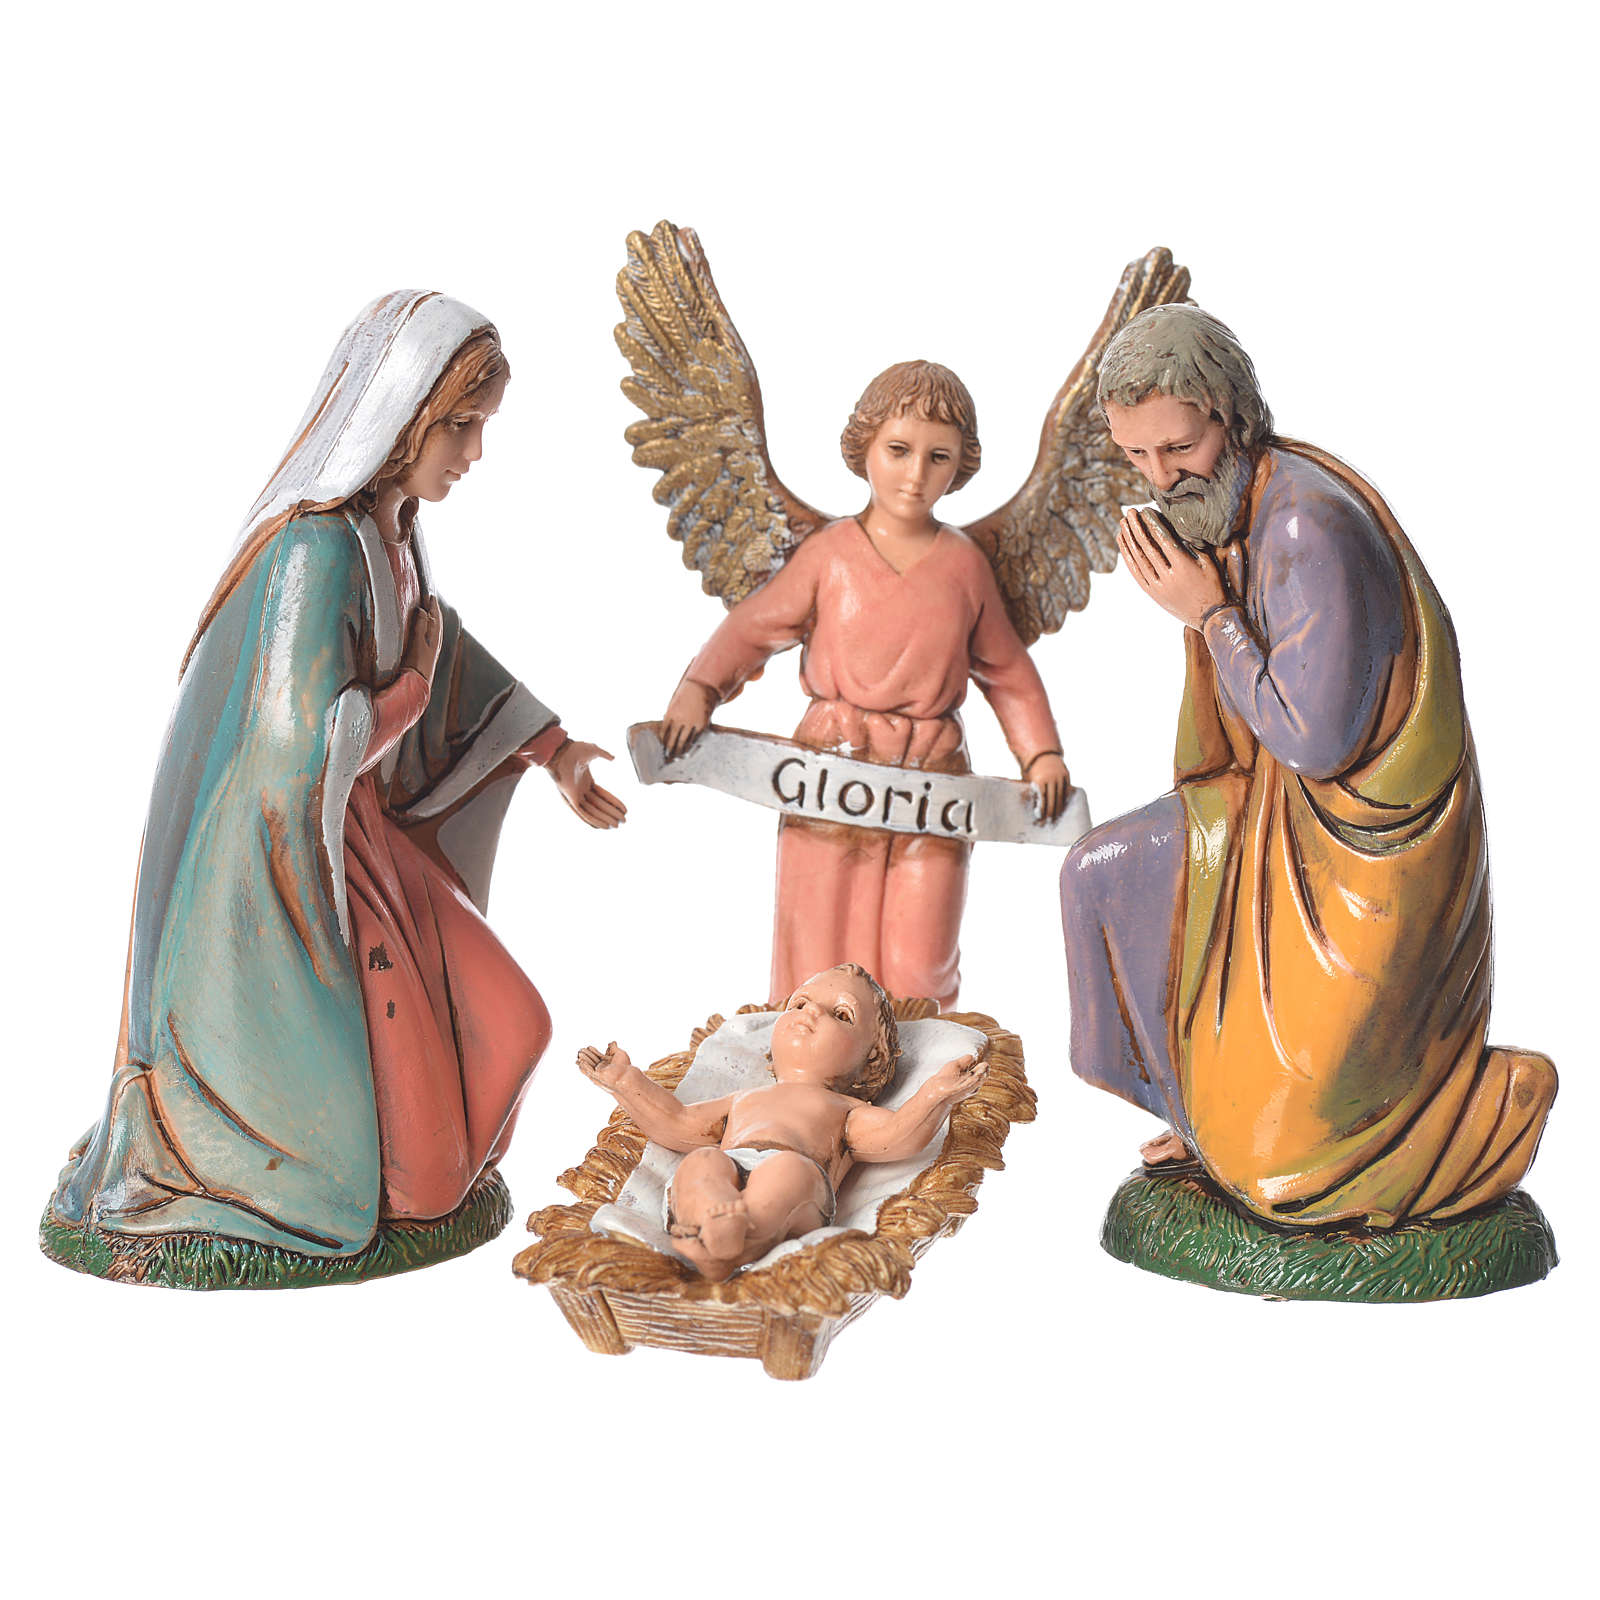 Nativity Scene figurines by Moranduzzo 10cm, 6 pieces 4